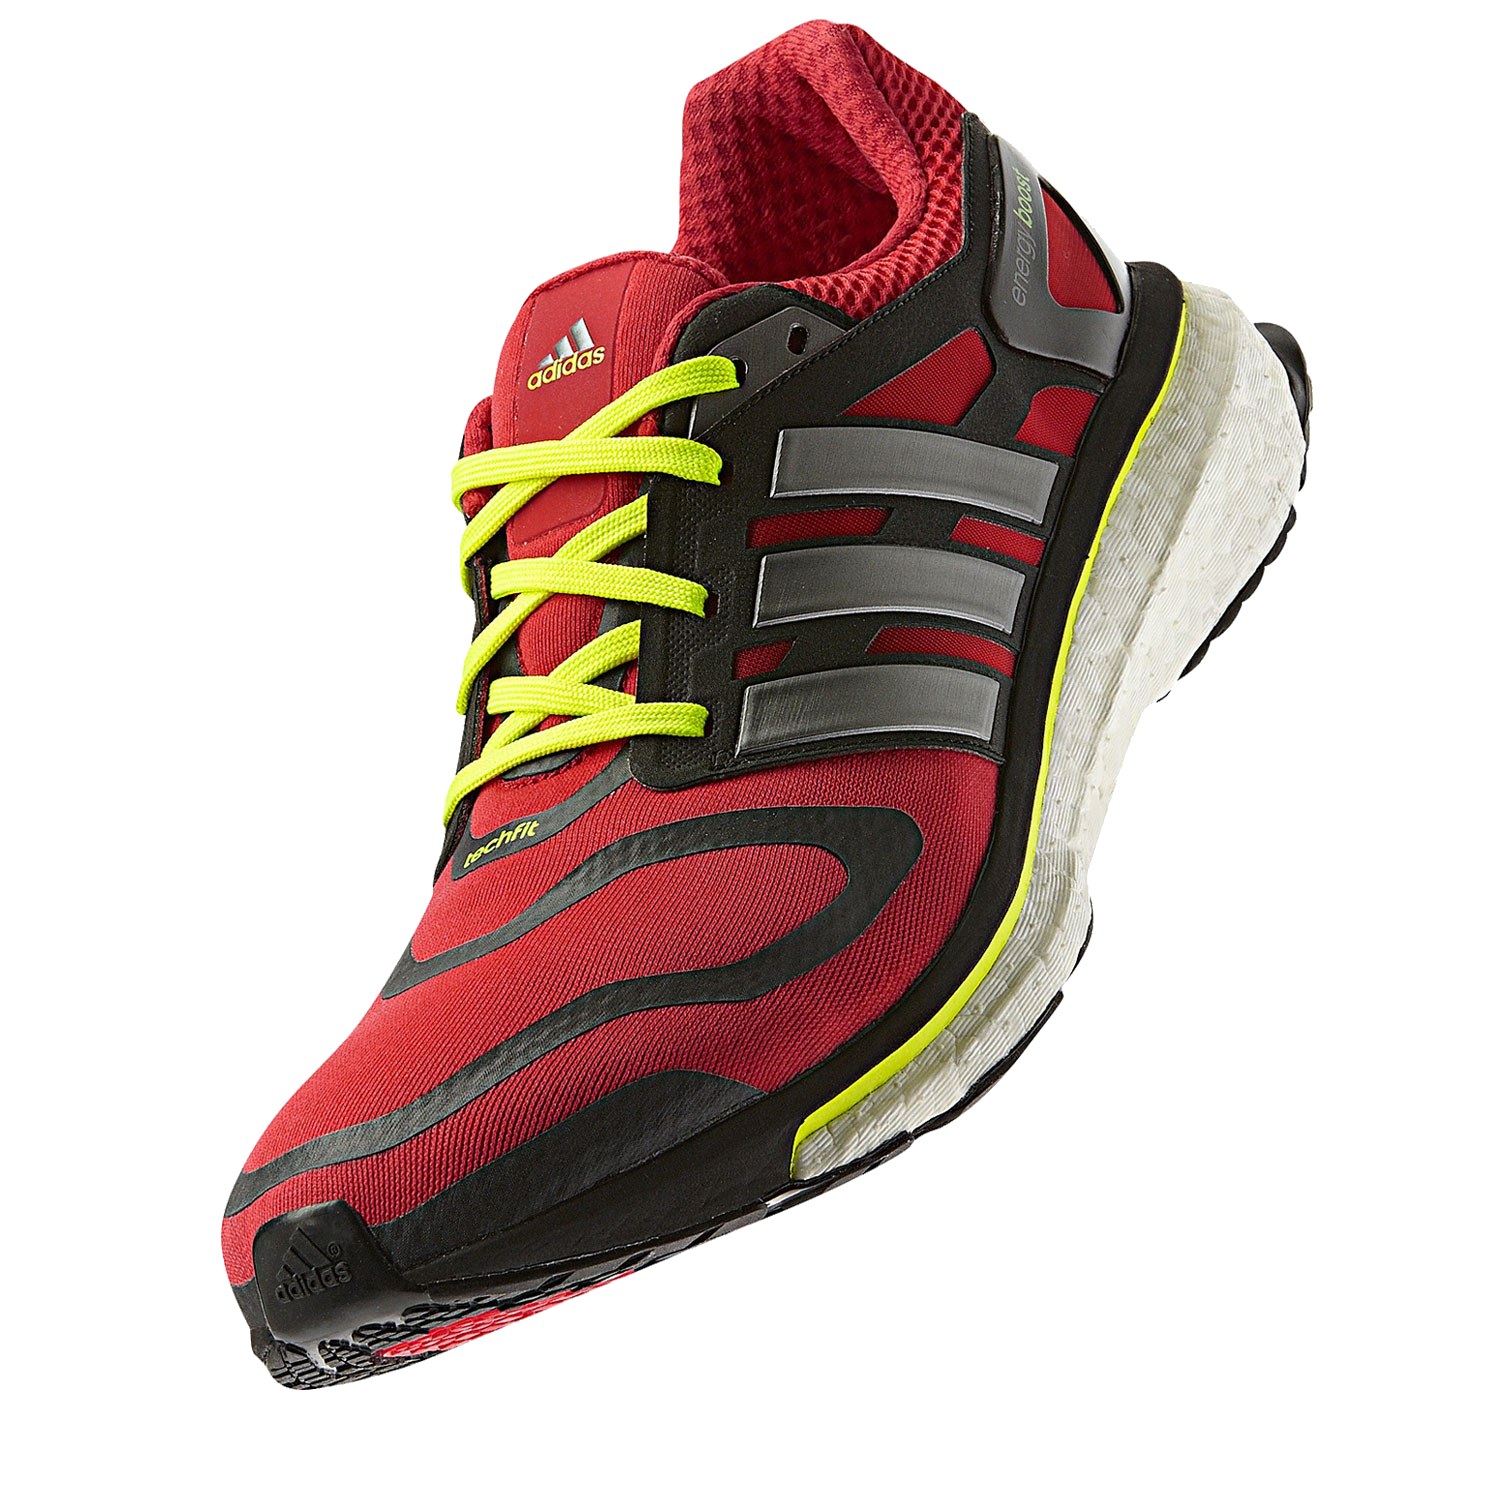 adidas shoes red basketball background png 621327